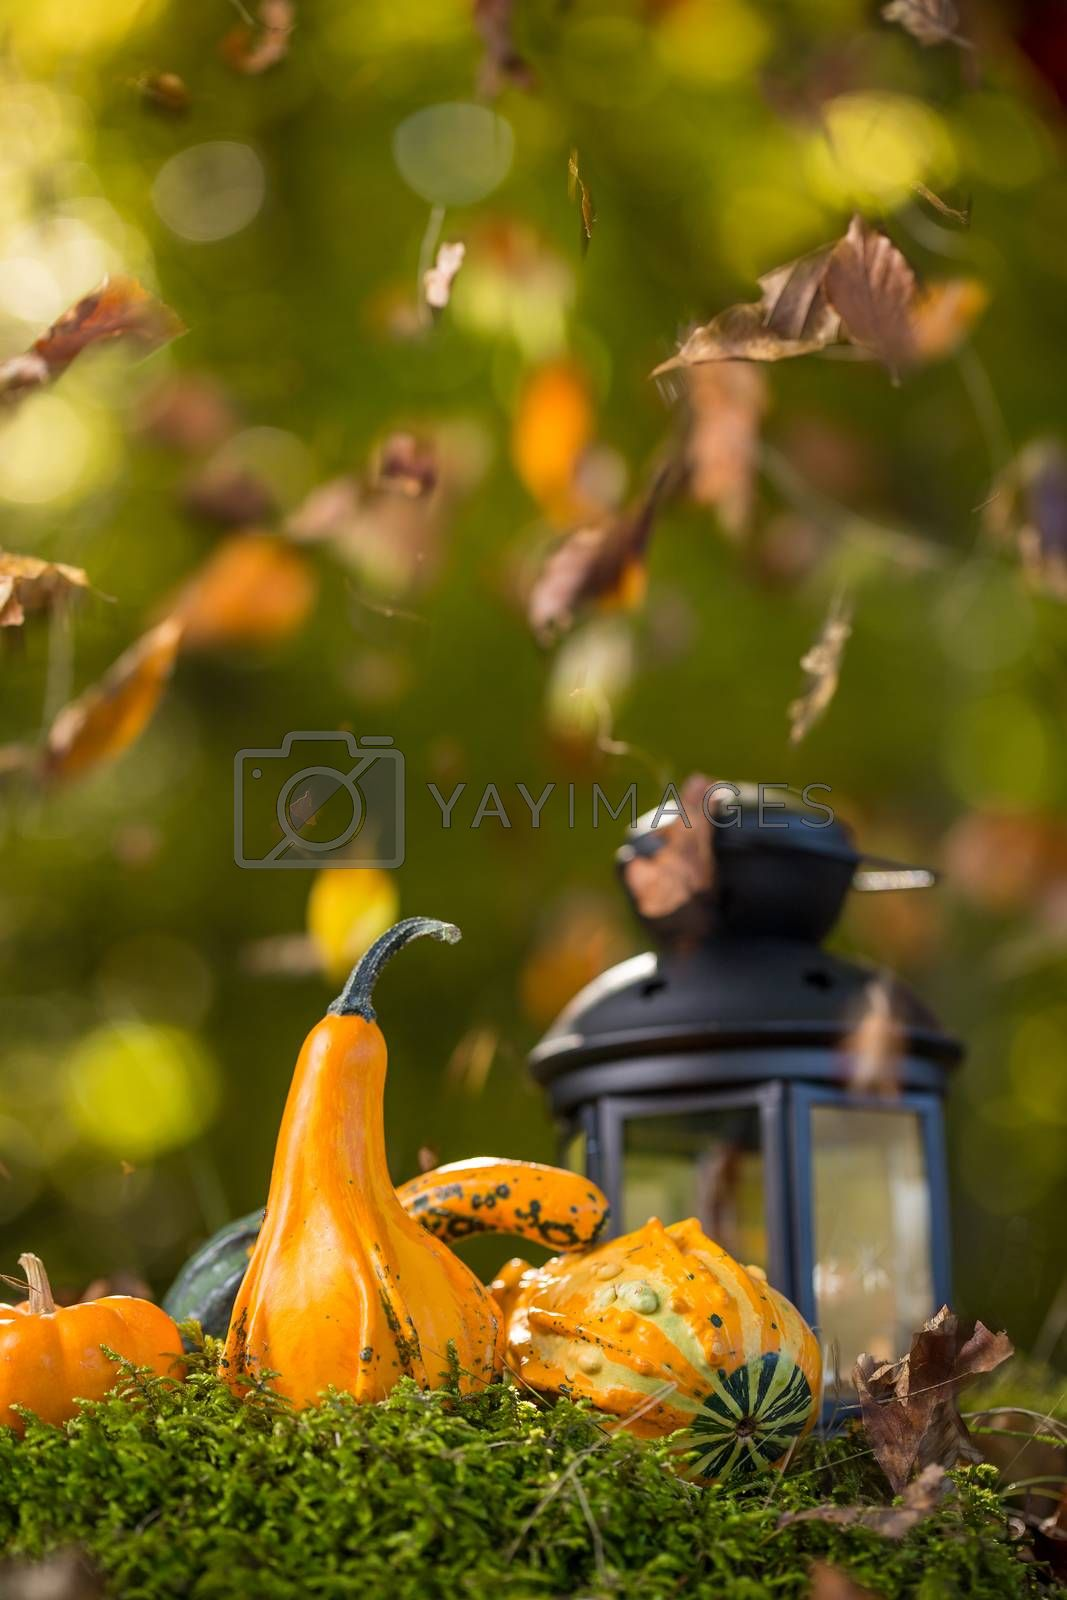 Lantern with burning candles and pumpkins in forest